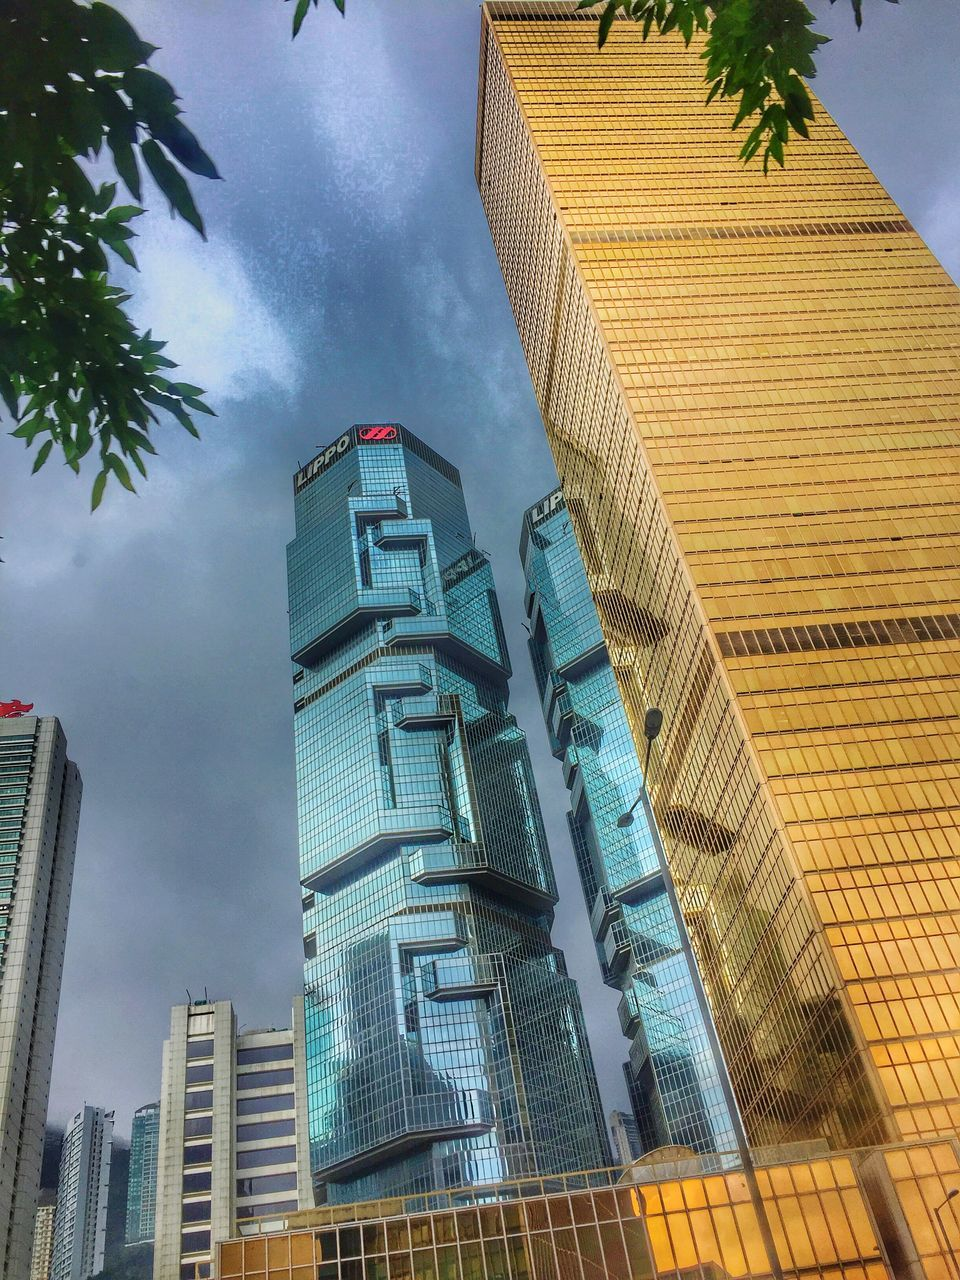 architecture, building exterior, built structure, low angle view, skyscraper, modern, sky, outdoors, no people, day, tall, city